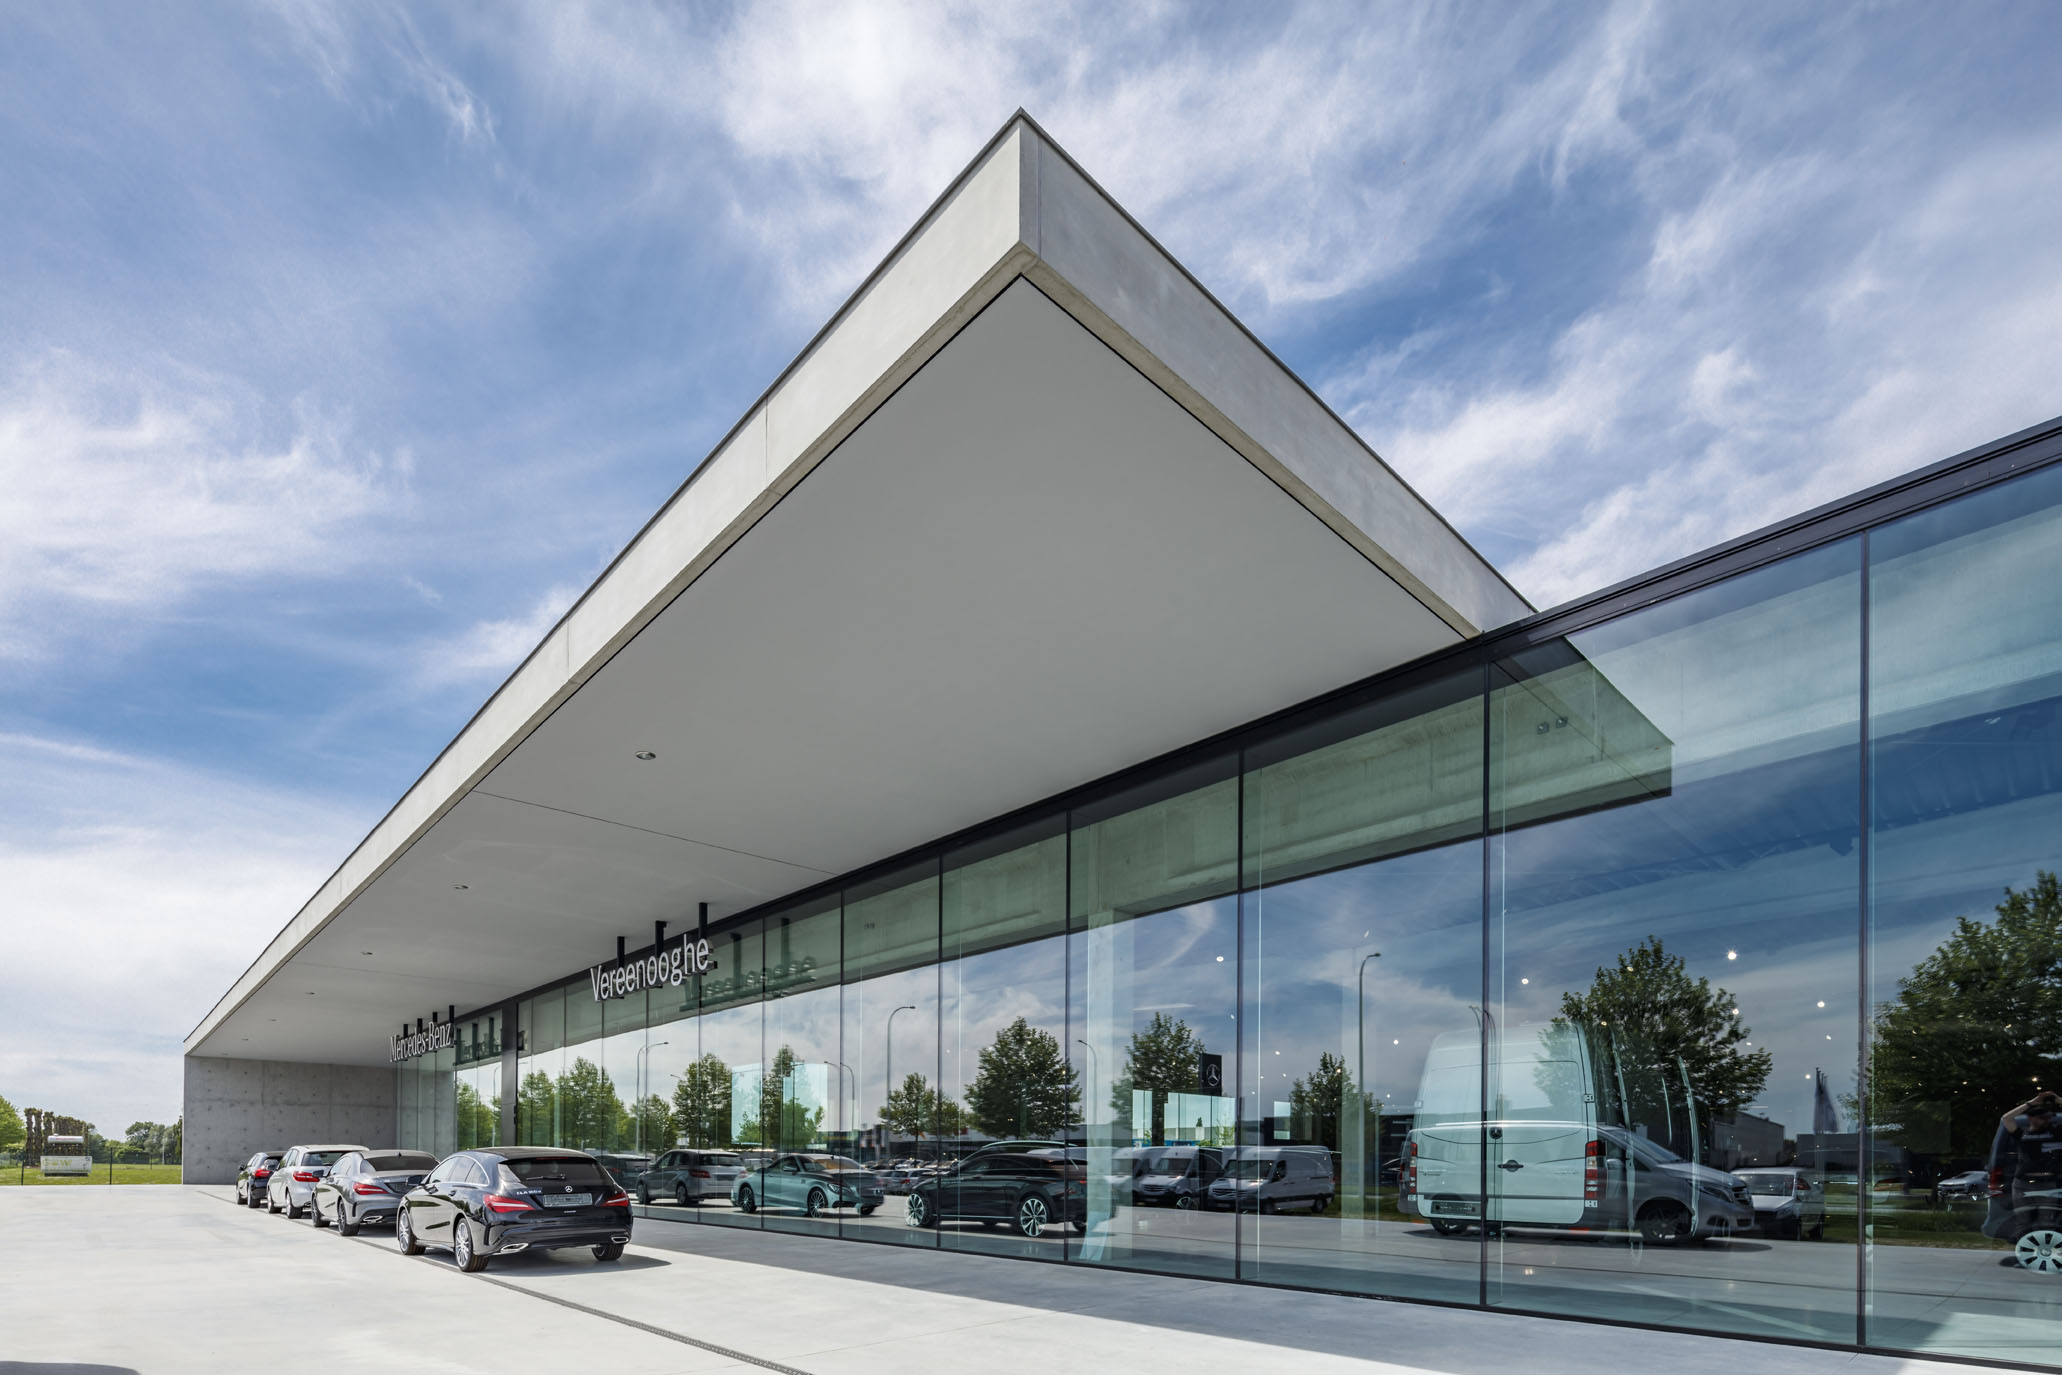 Image of Mercedes Showroom in Ypres, Belgium